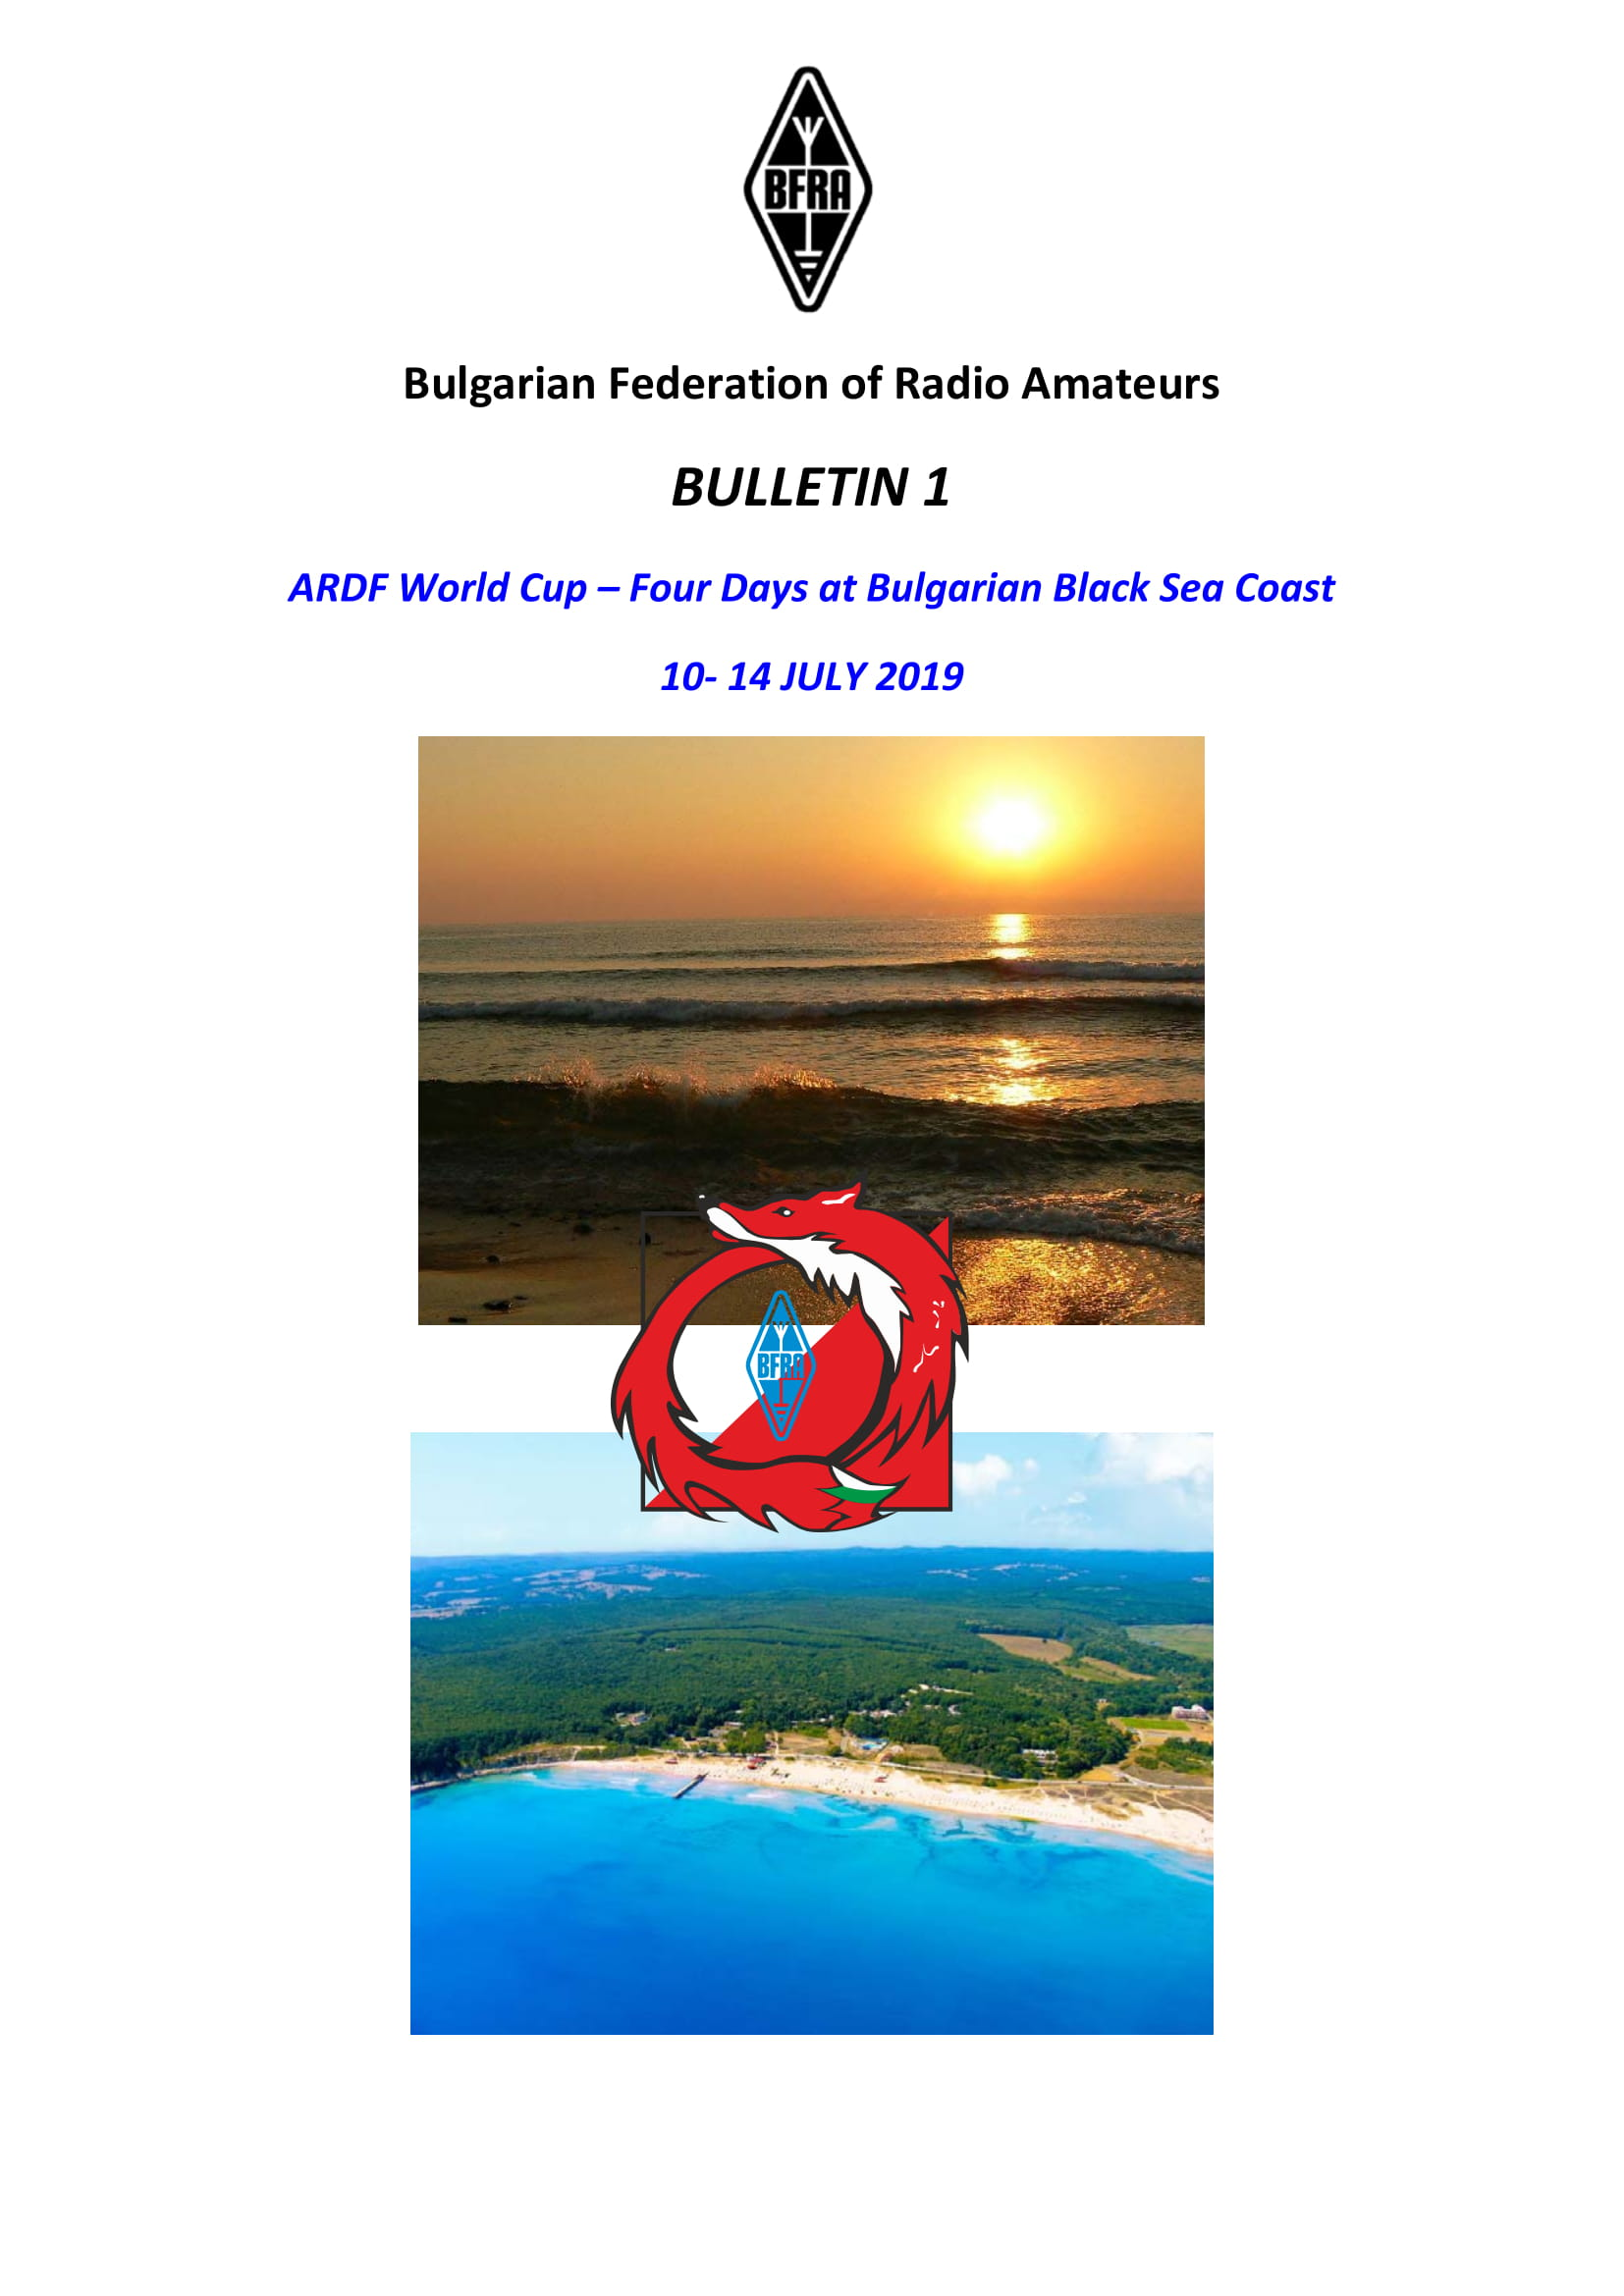 Bulletin 1 ARDF World Cup at Bulgarian Black Sea Primorsko 2019 1